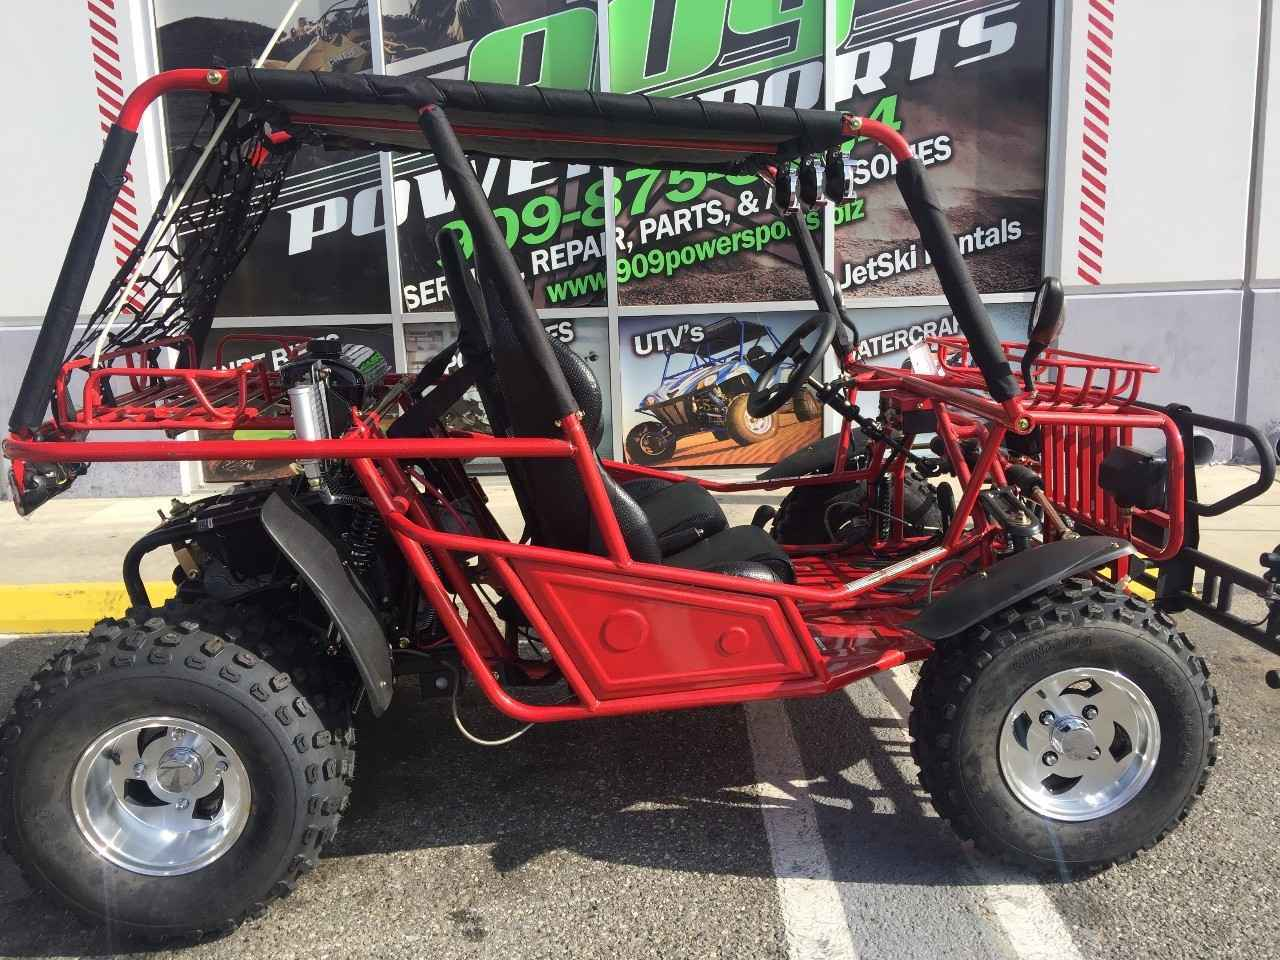 New 2016 Kandi 200cc Jeep Go-Kart ATVs For Sale in California on  atvtrades com